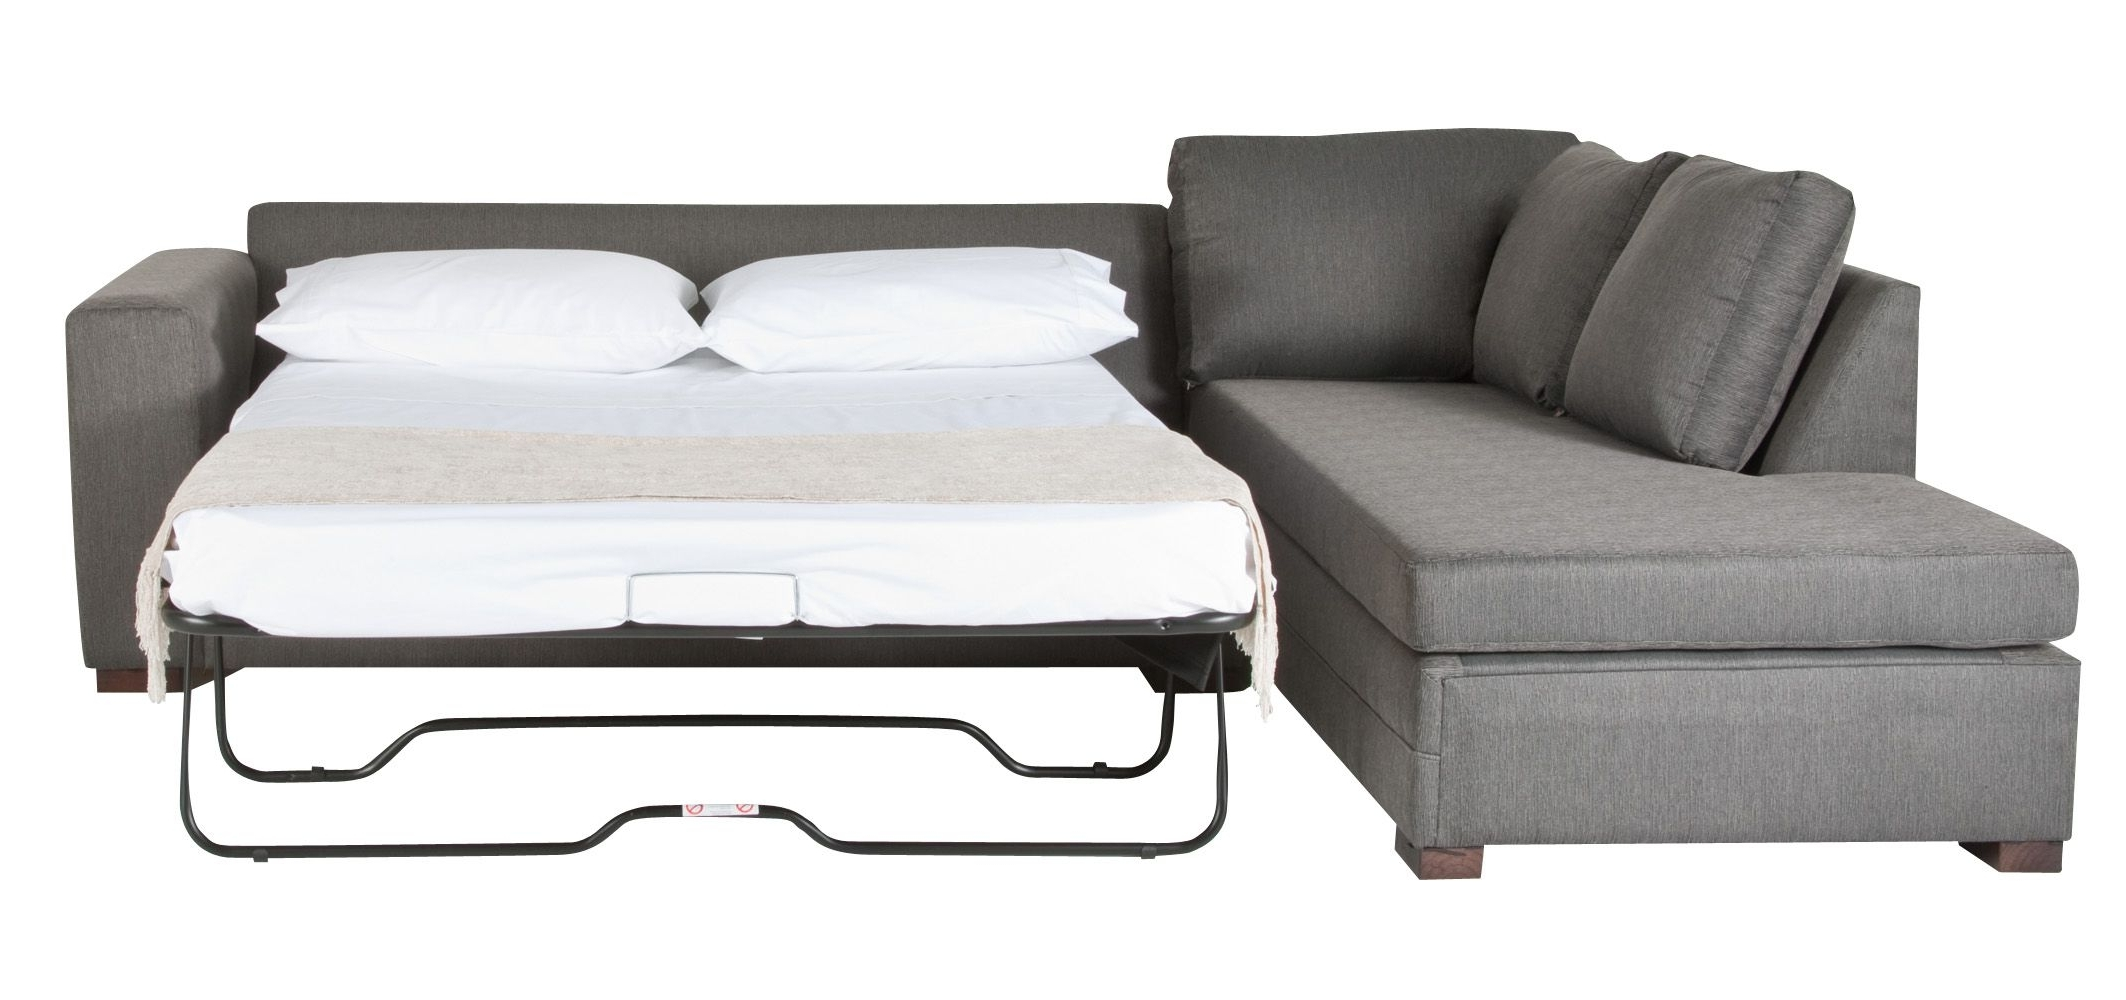 Preferred King Size Sleeper Sofas Within Picturesque Gray Fabric Sleeper Couch With Pull Out Bed White (View 11 of 15)